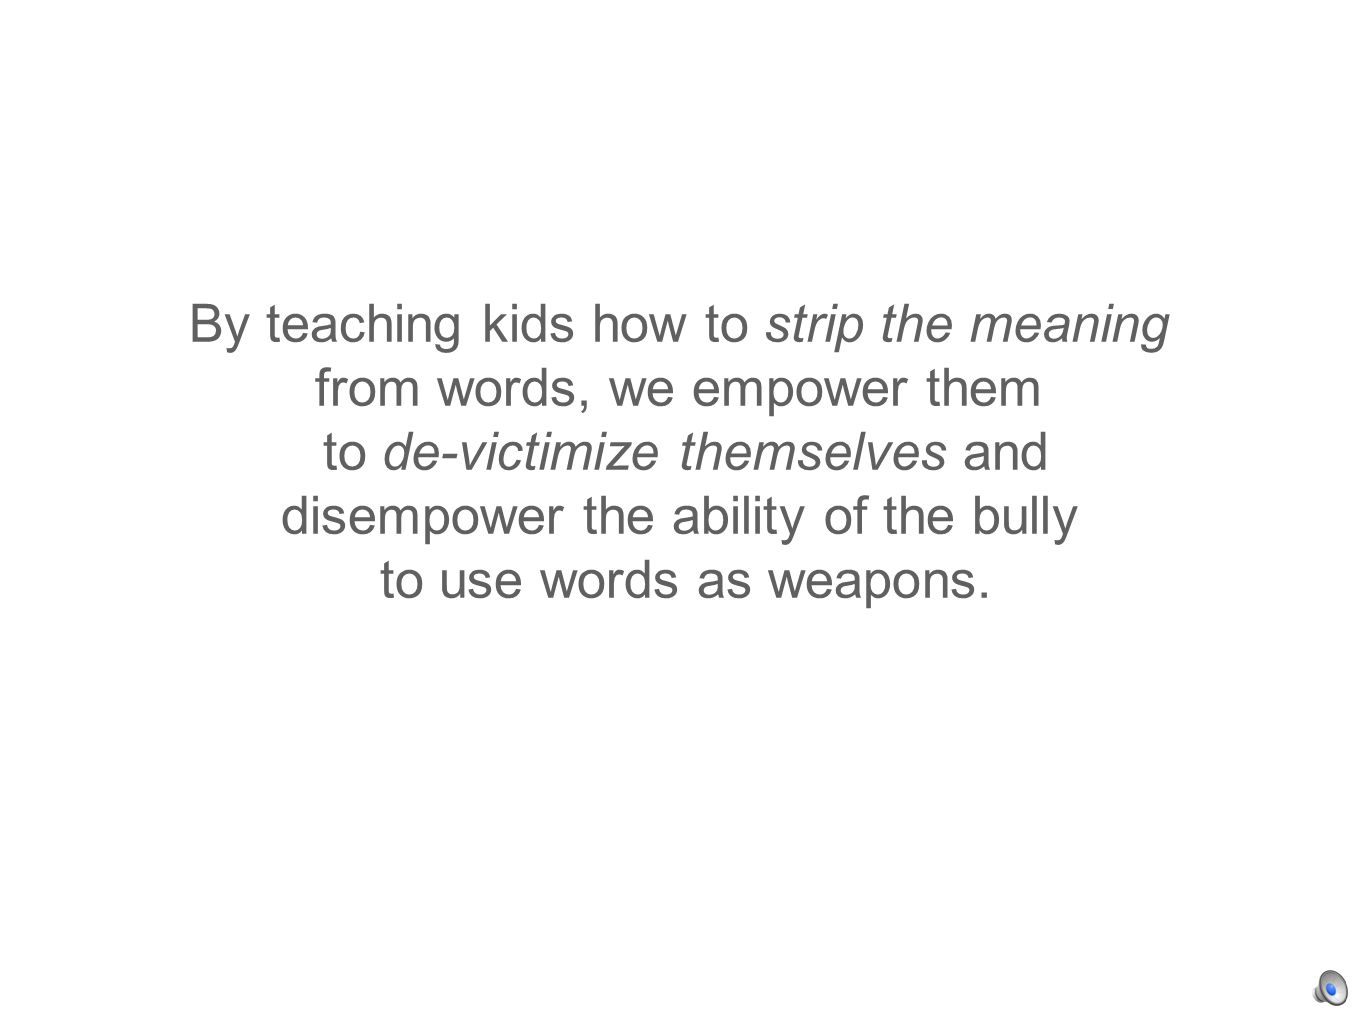 By teaching kids how to strip the meaning from words, we empower them to de-victimize themselves and disempower the ability of the bully to use words as weapons.